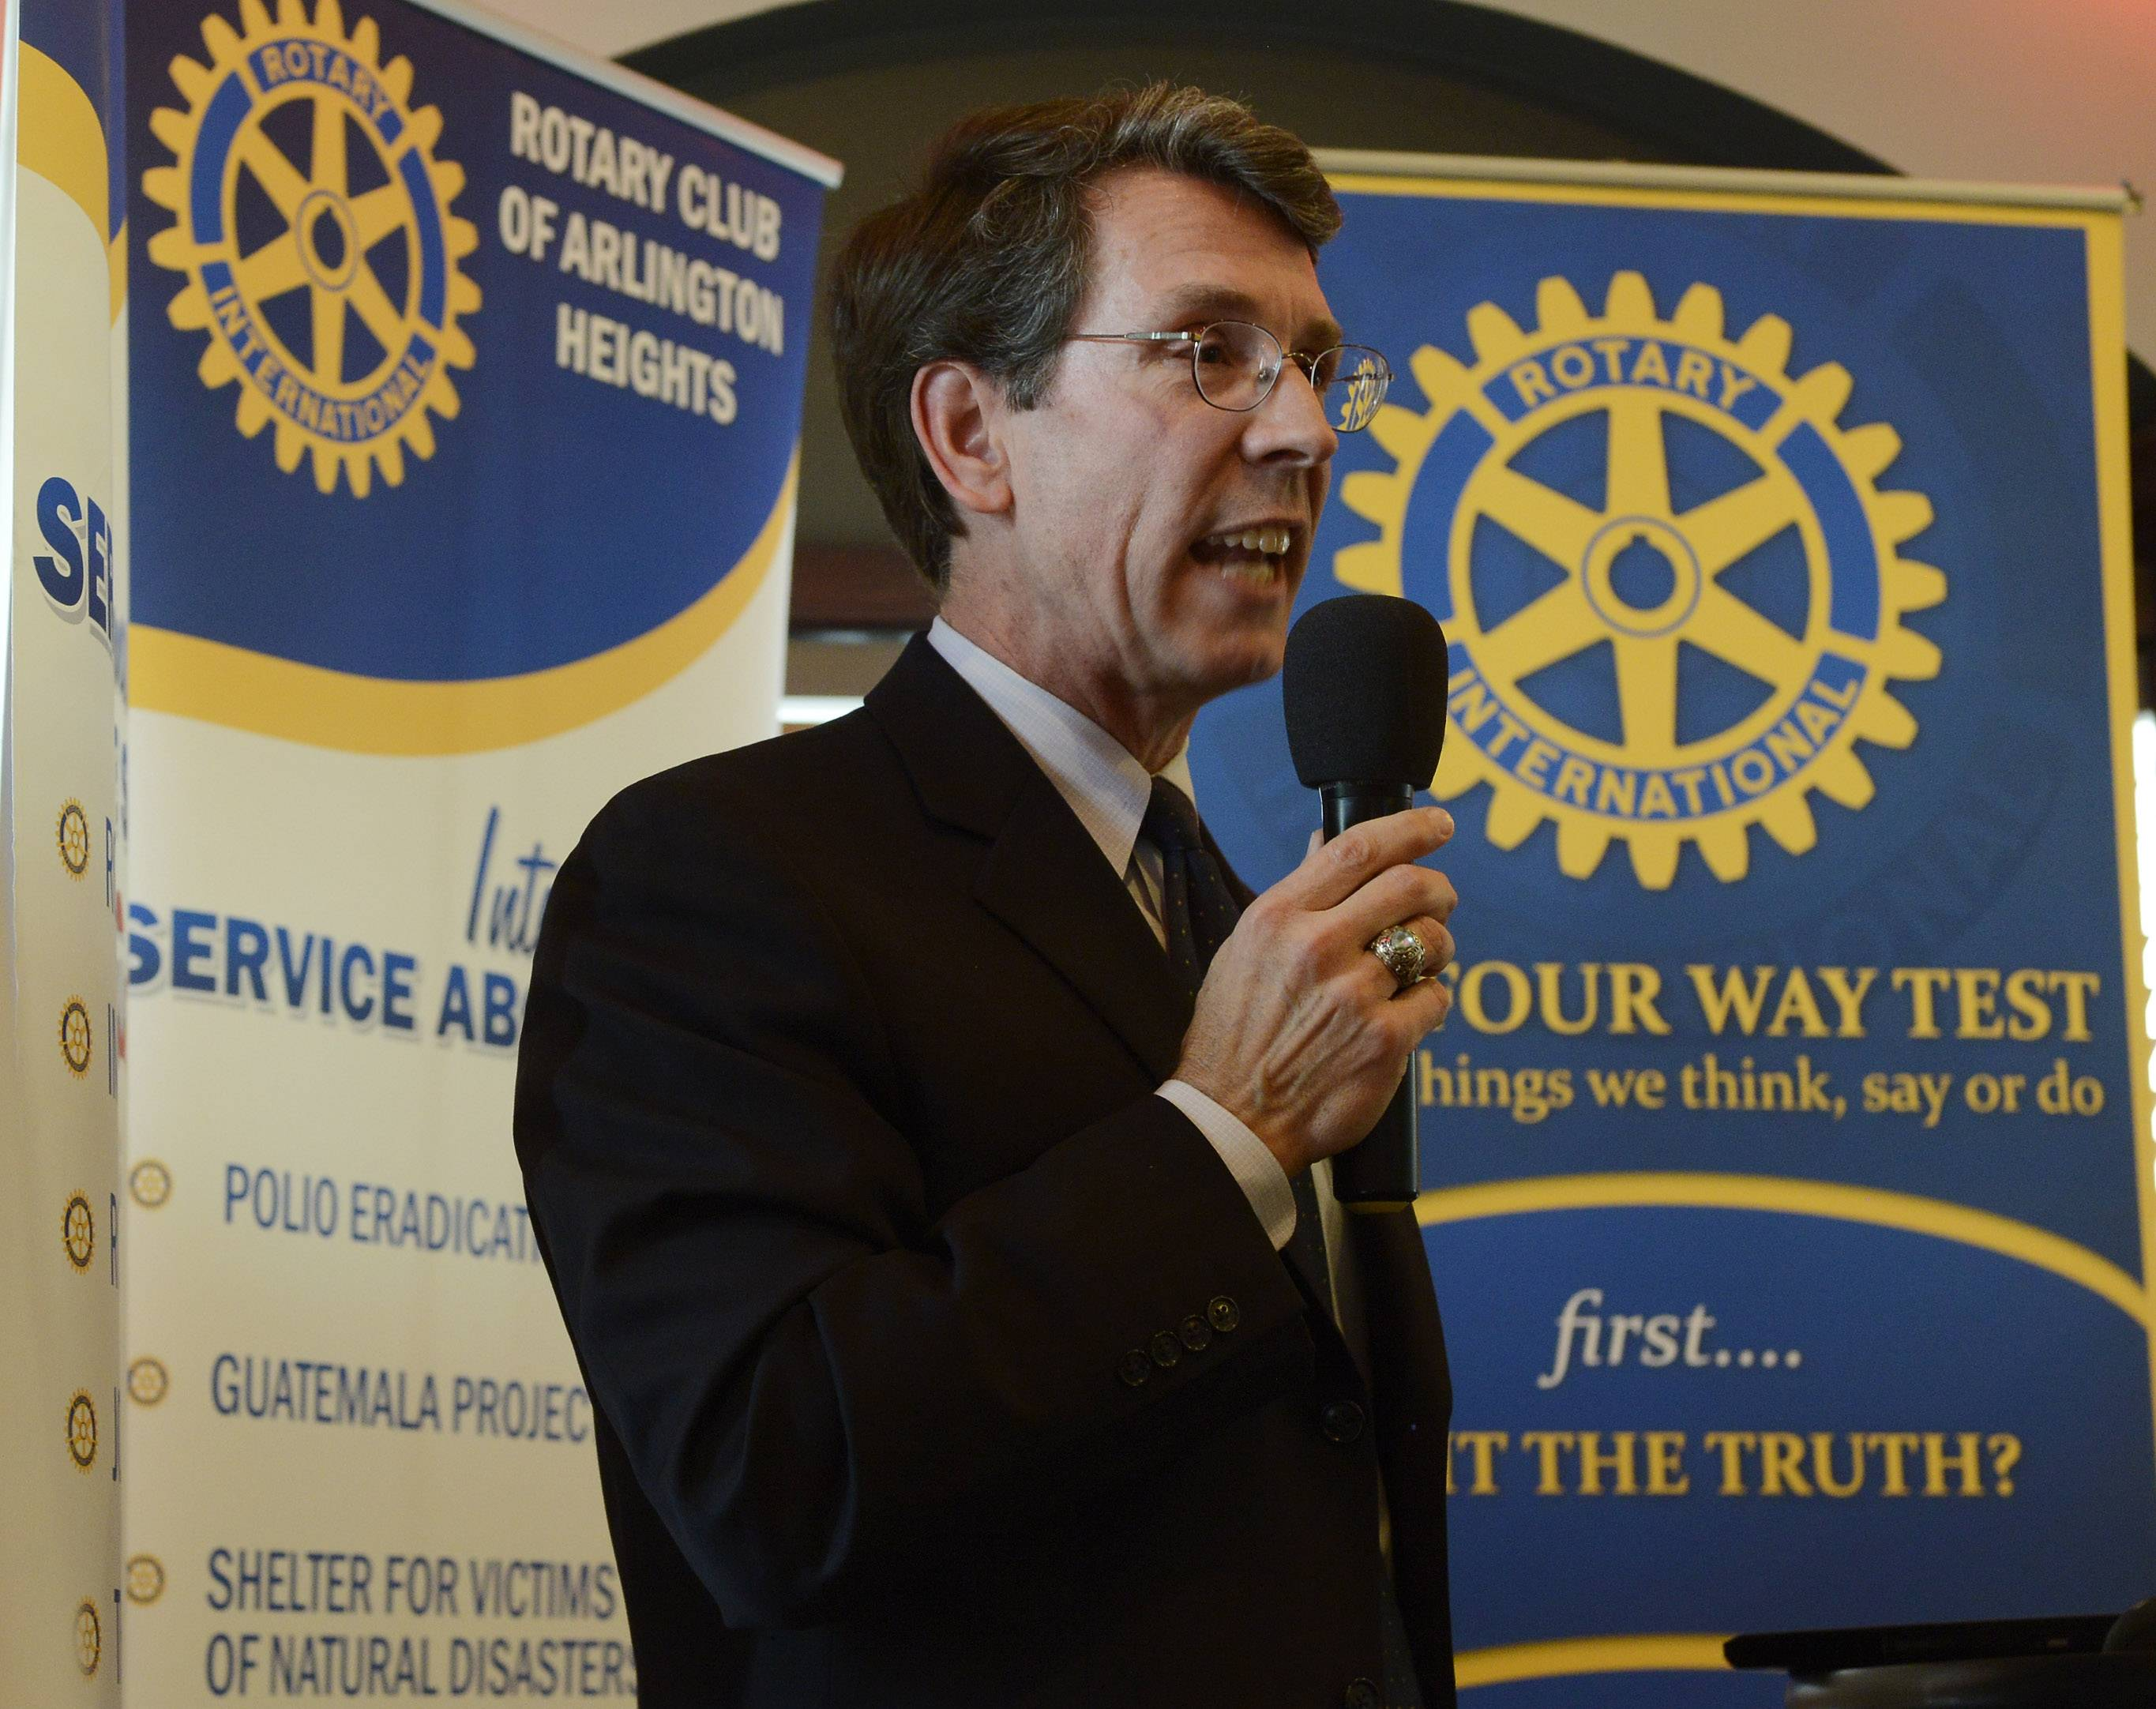 Arlington Heights Mayor Tom Hayes gives his first State of the Village address to the Arlington Heights Rotary Club Thursday at Clementi's Restaurant.